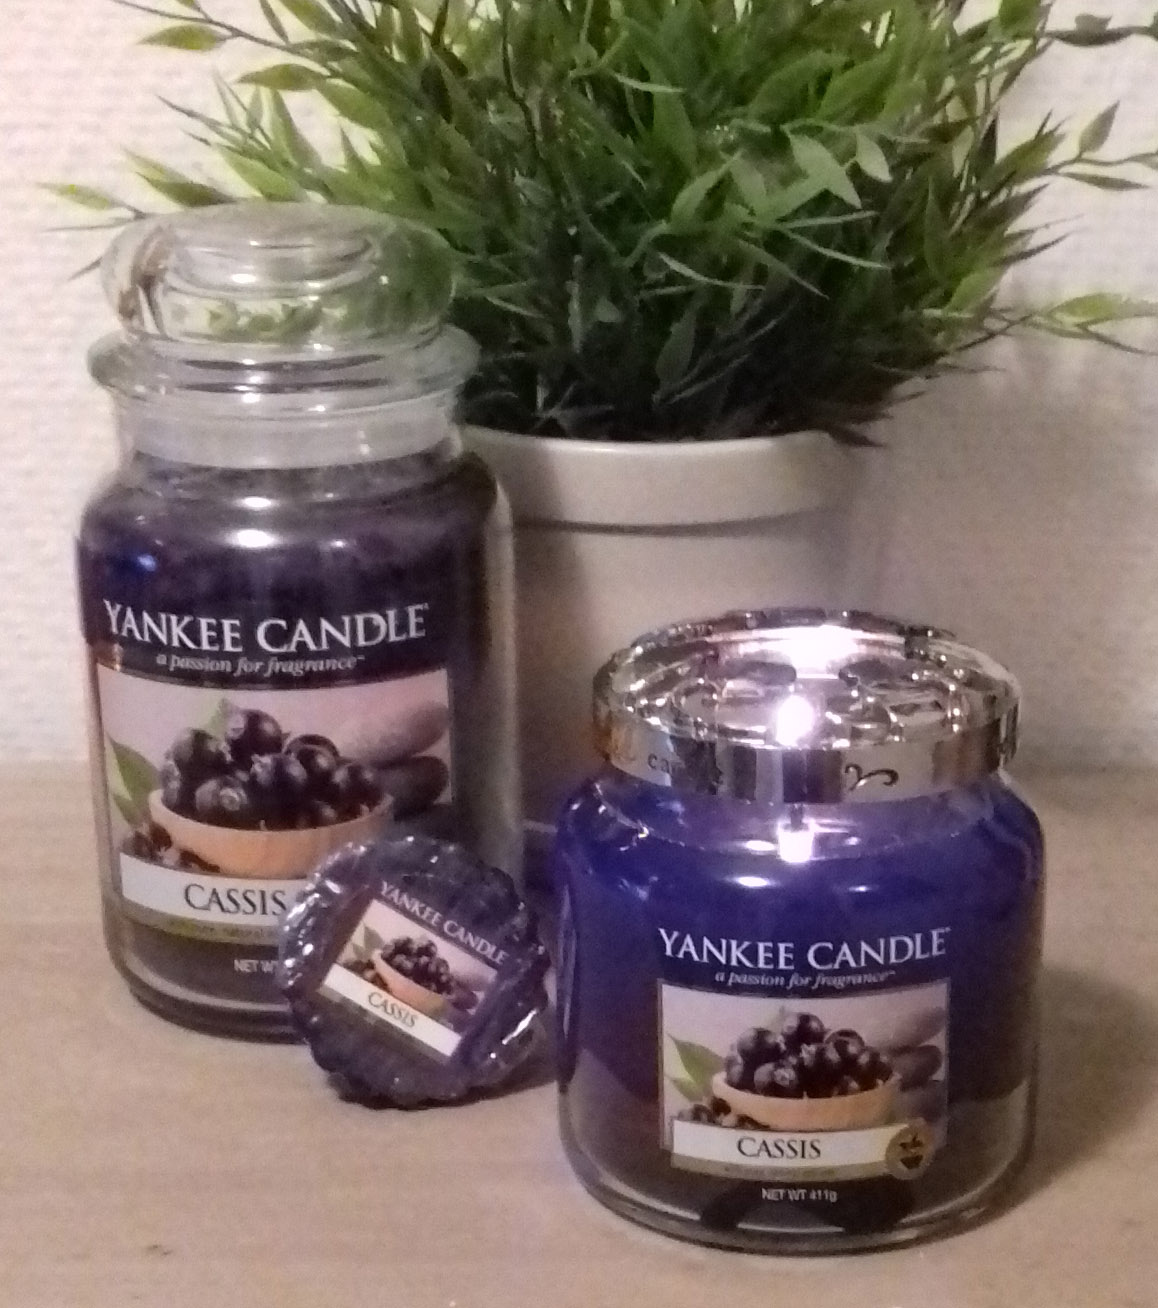 life and stuff yankee candle duftkerzen review cassis. Black Bedroom Furniture Sets. Home Design Ideas